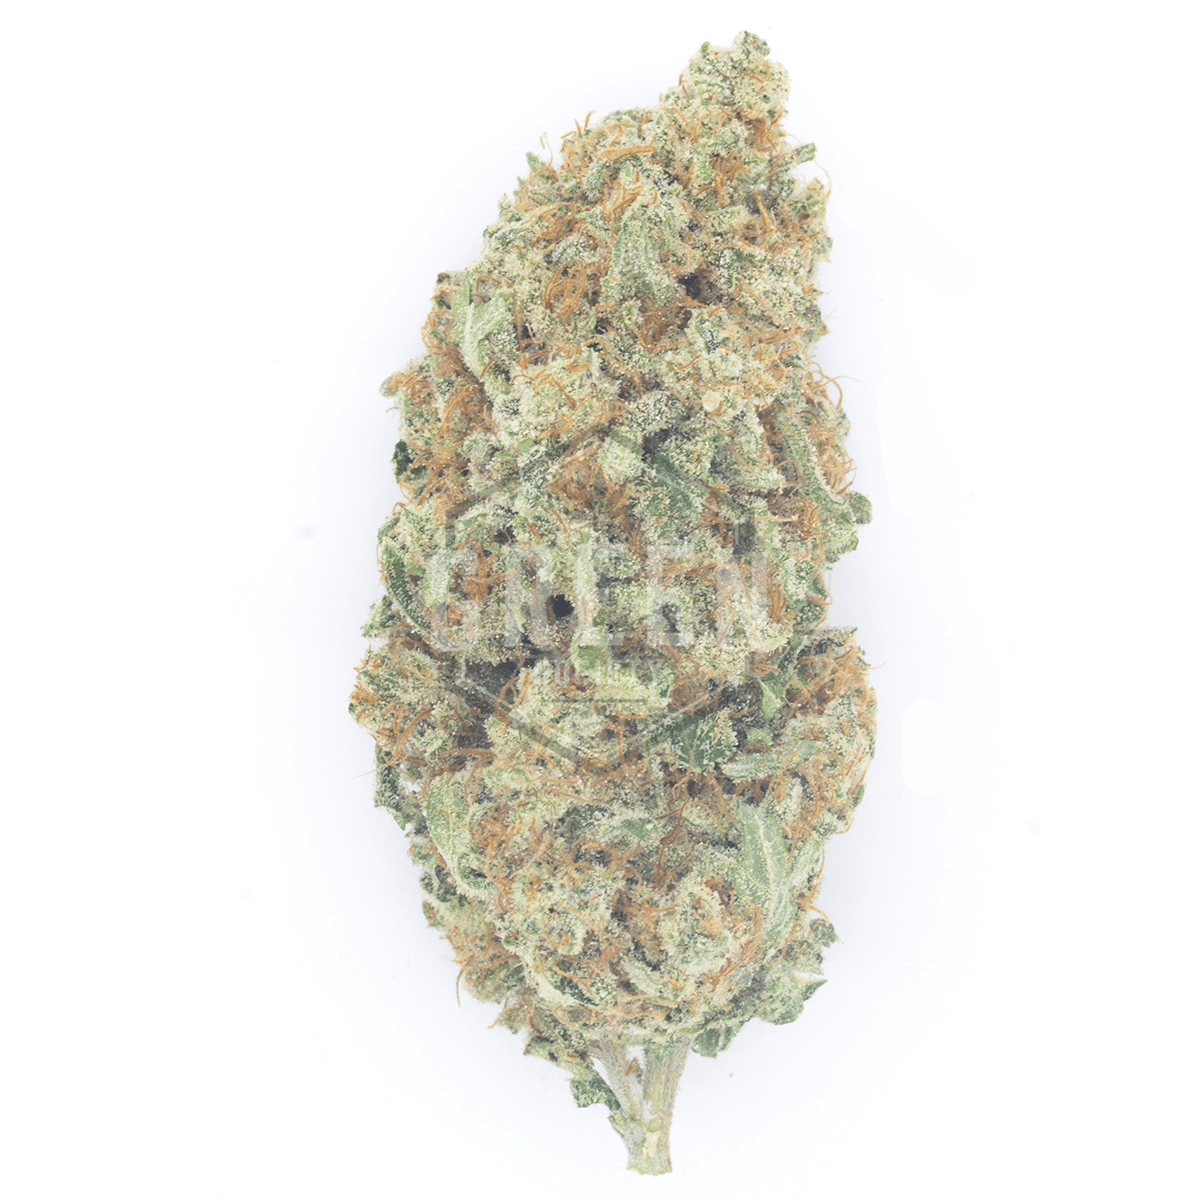 Wedding Cake Ounce Special by Green Society - Image © 2018 Green Society. All Rights Reserved.